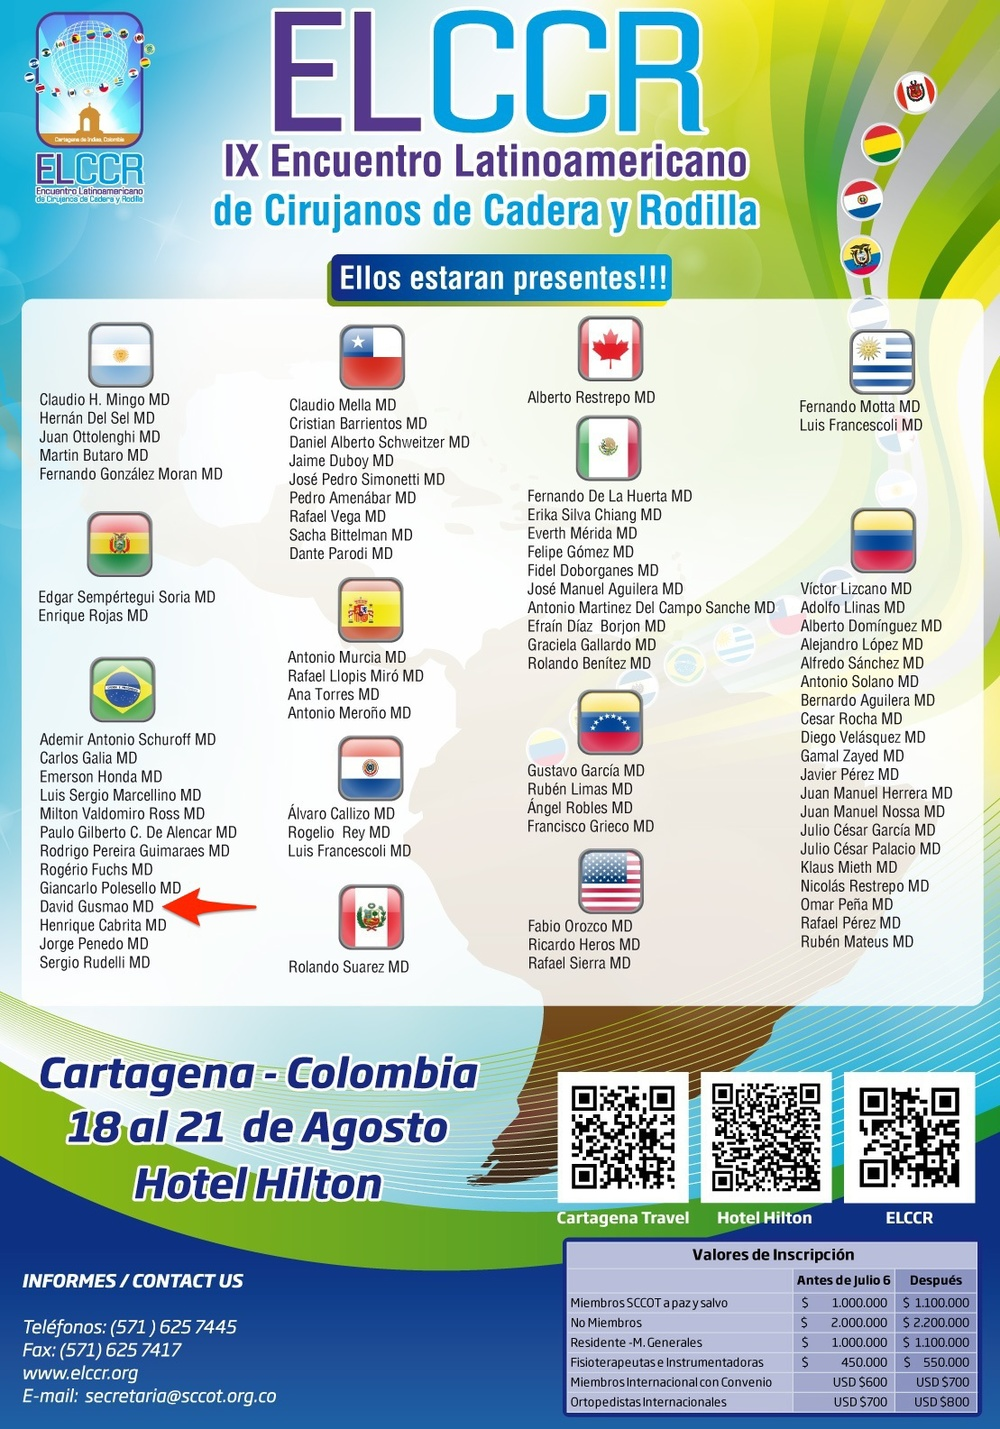 Lista dos convidados do evento